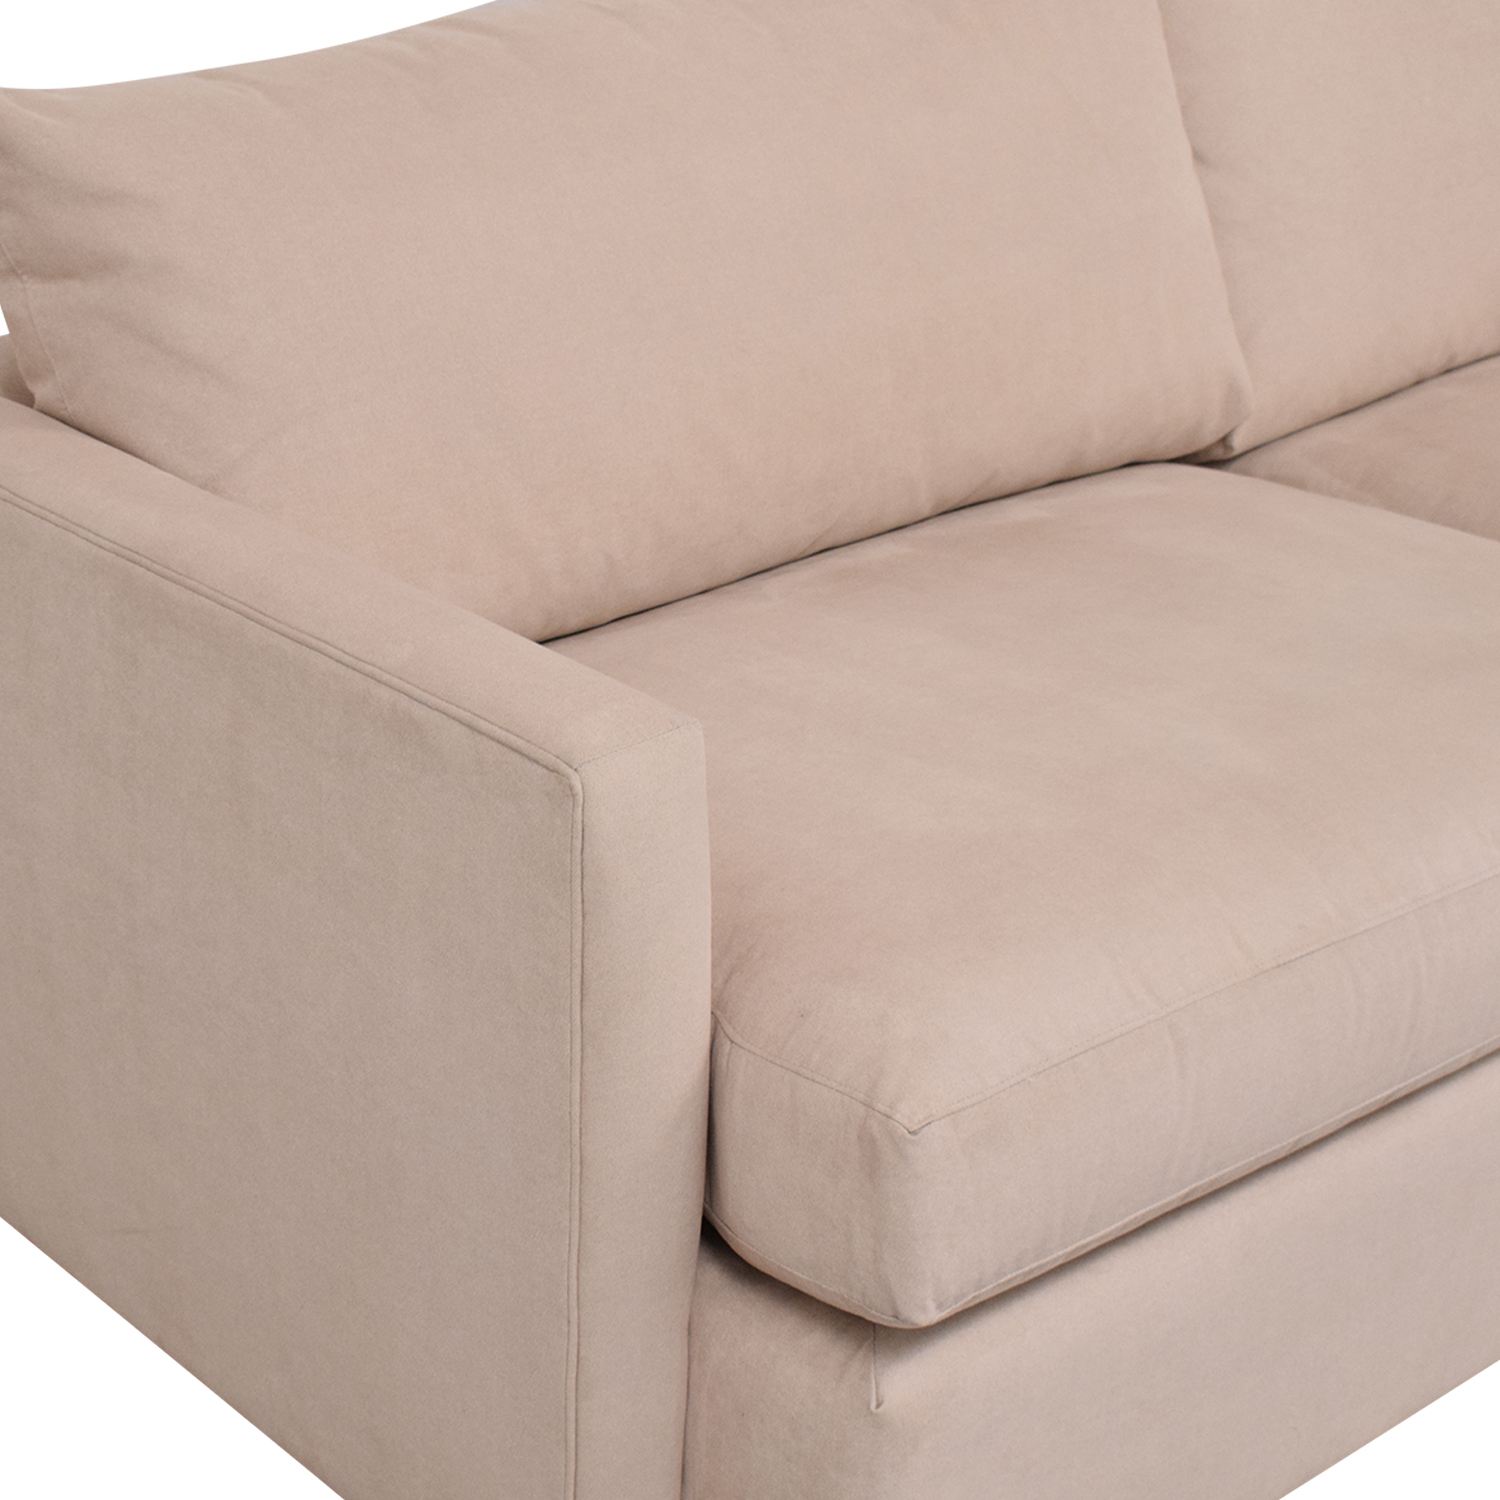 Crate & Barrel Crate & Barrel Lounge Sofa Classic Sofas